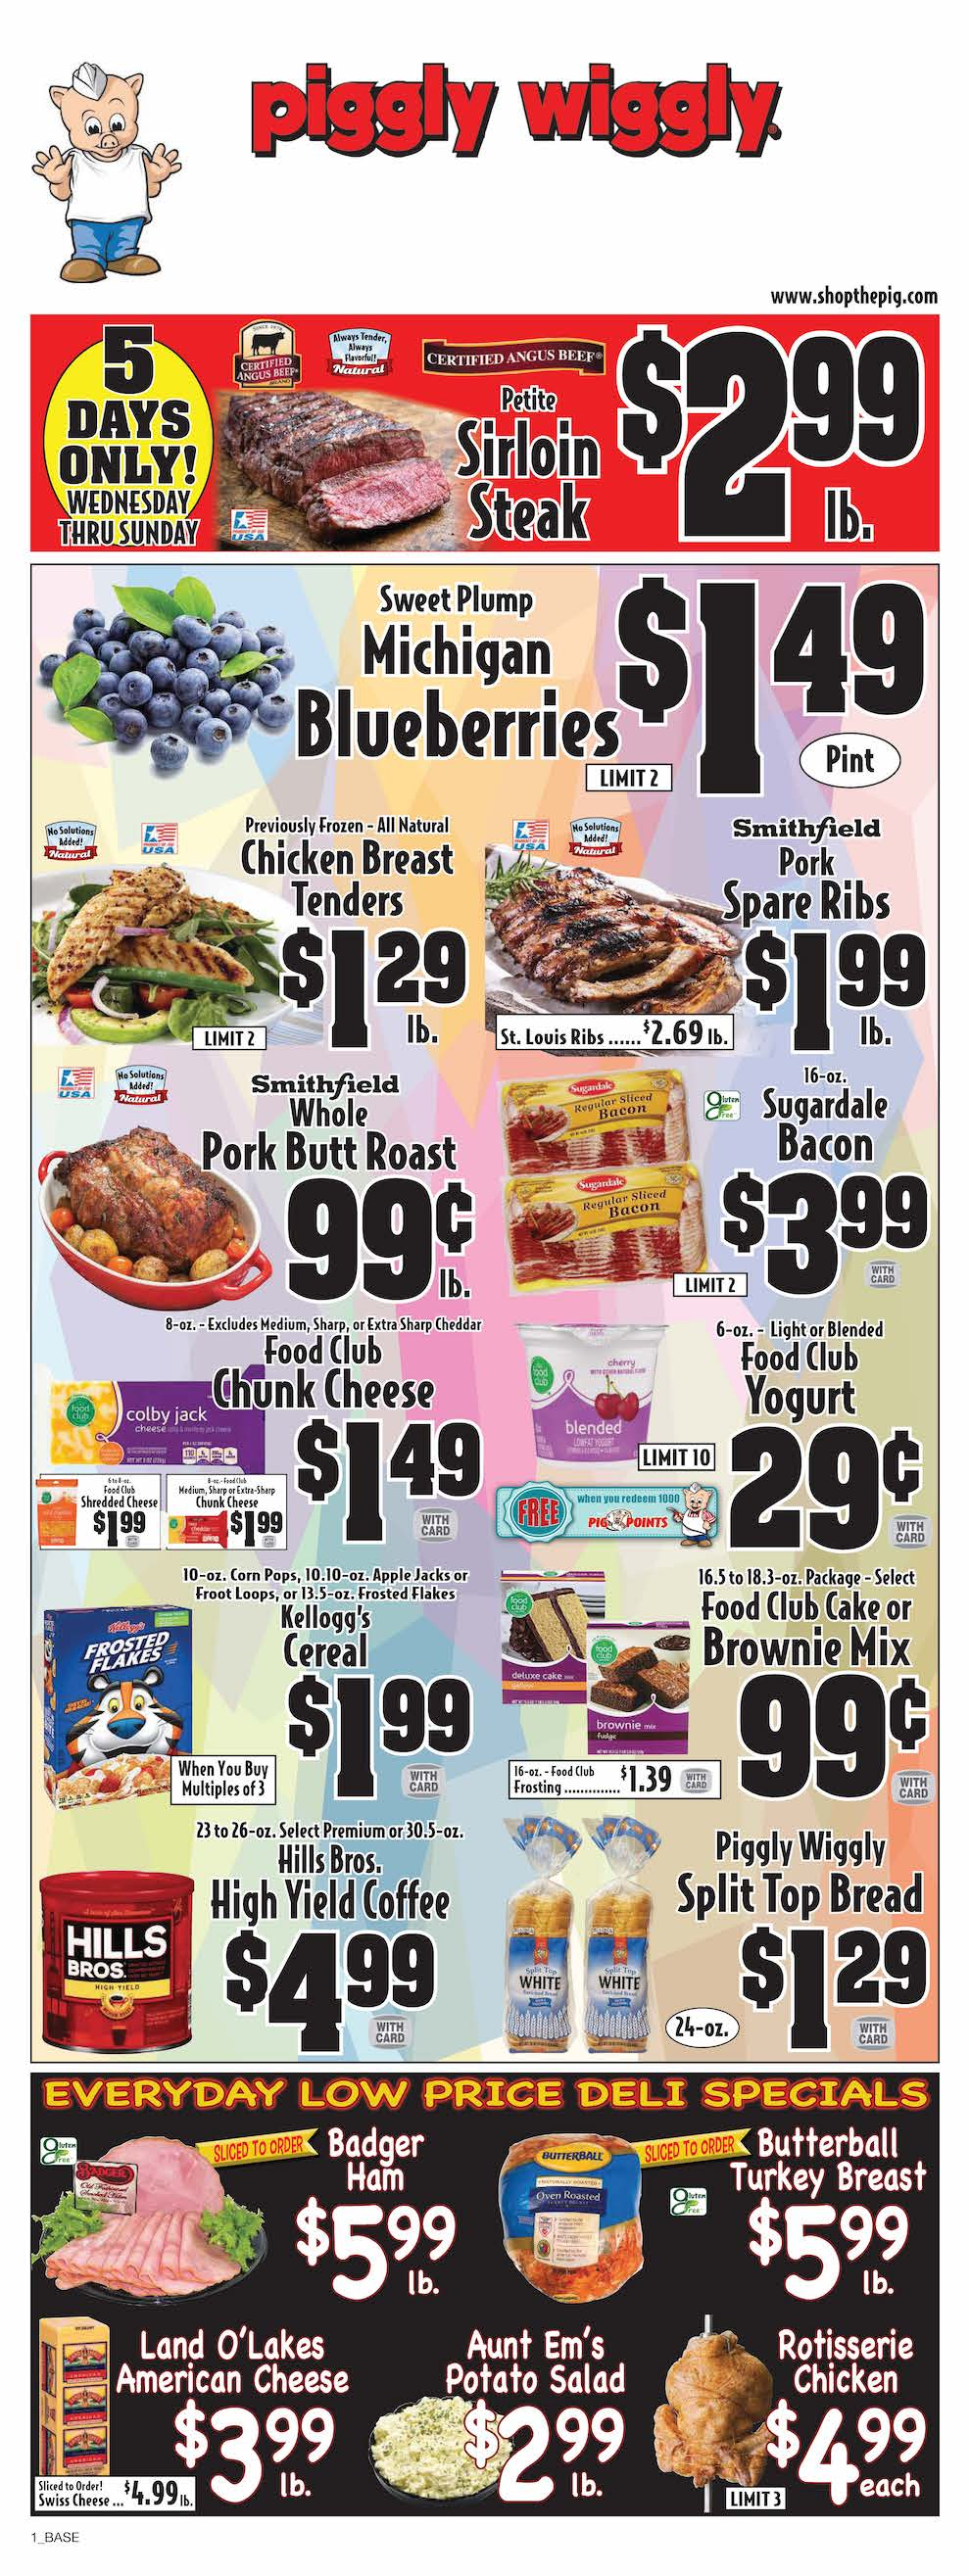 piggly wiggly ad aug 12 2020